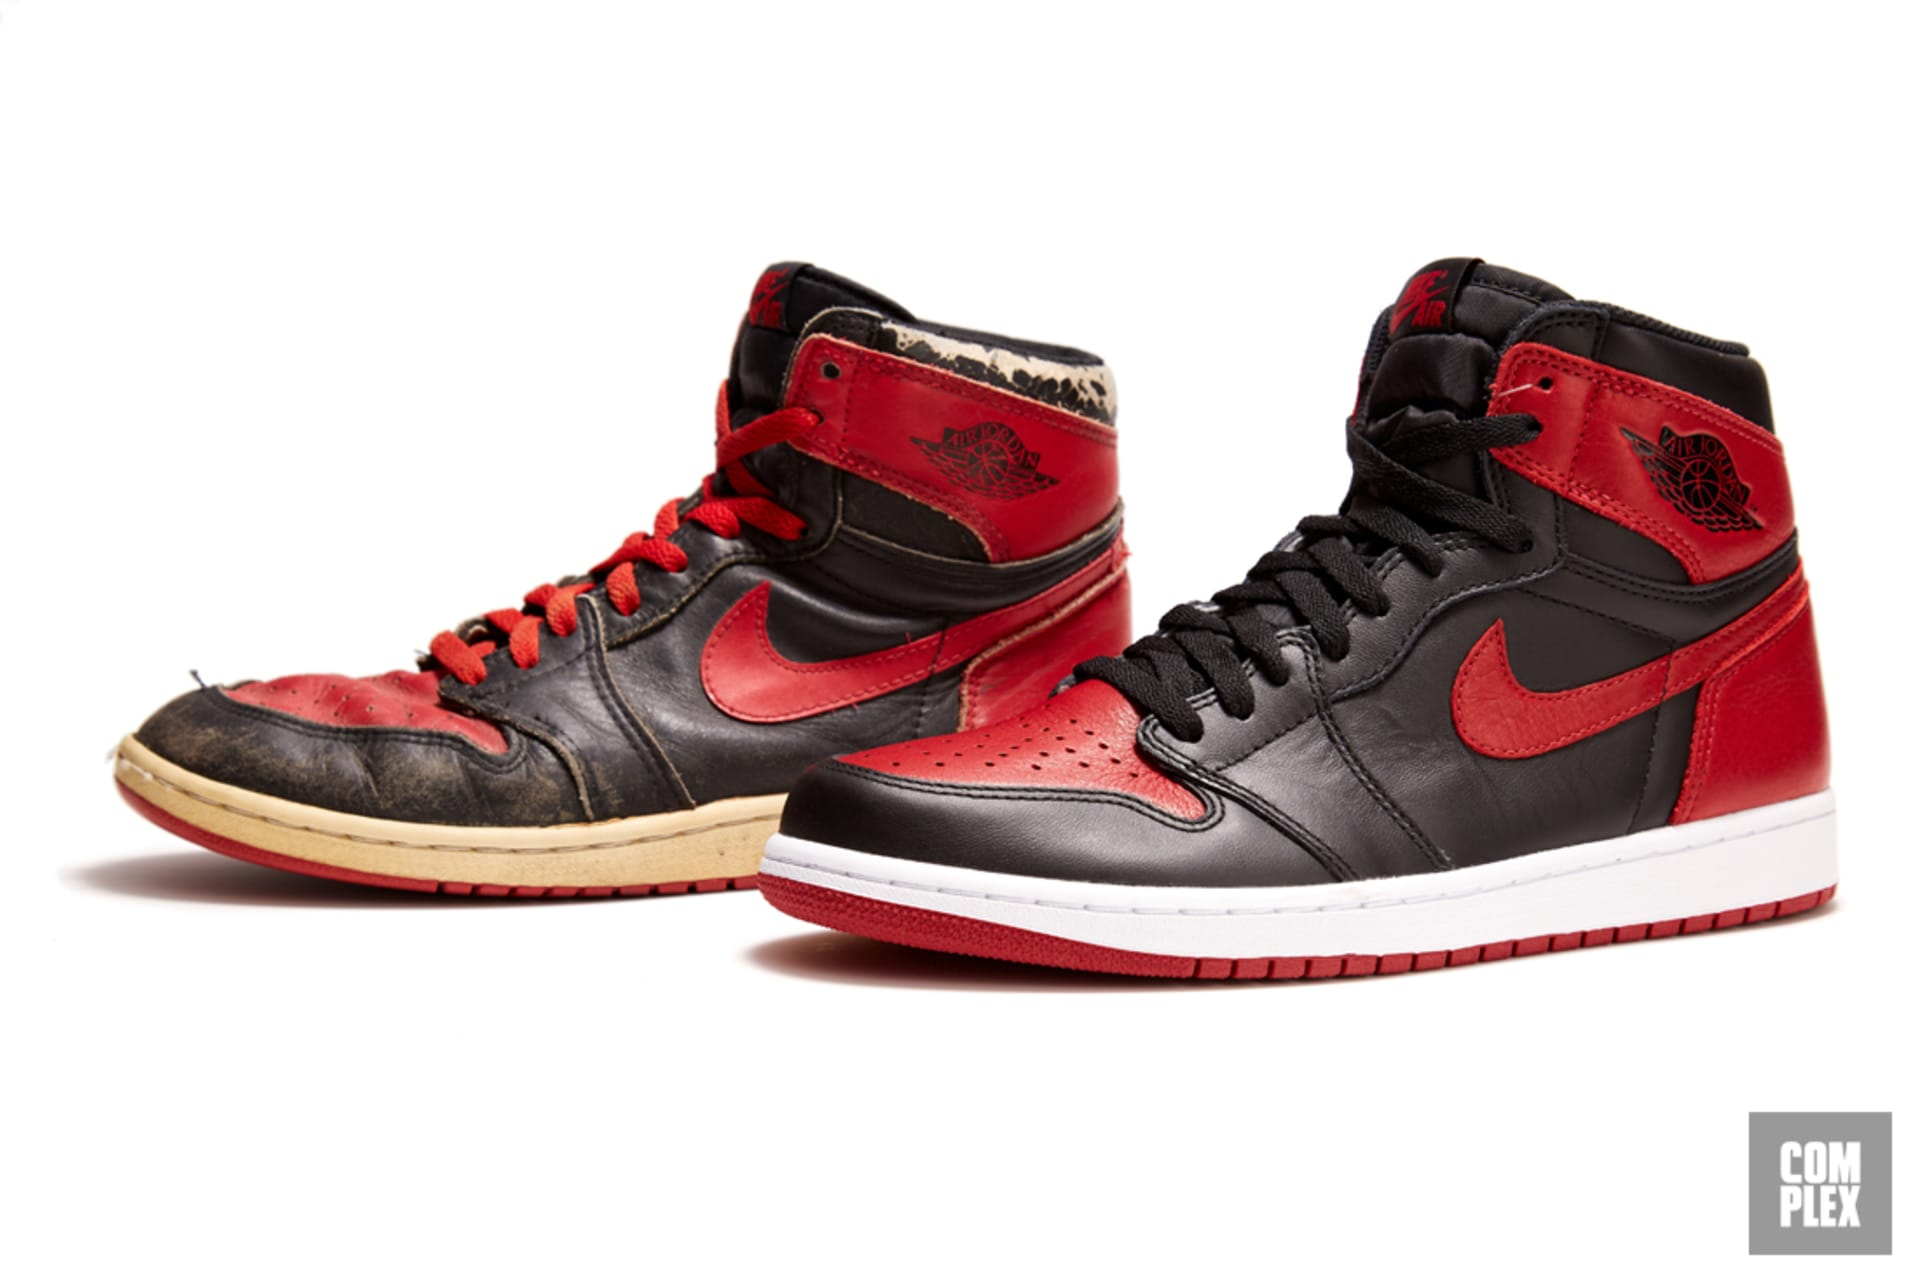 806bf7f39cc6 The Evolution of the Black and Red Air Jordan 1